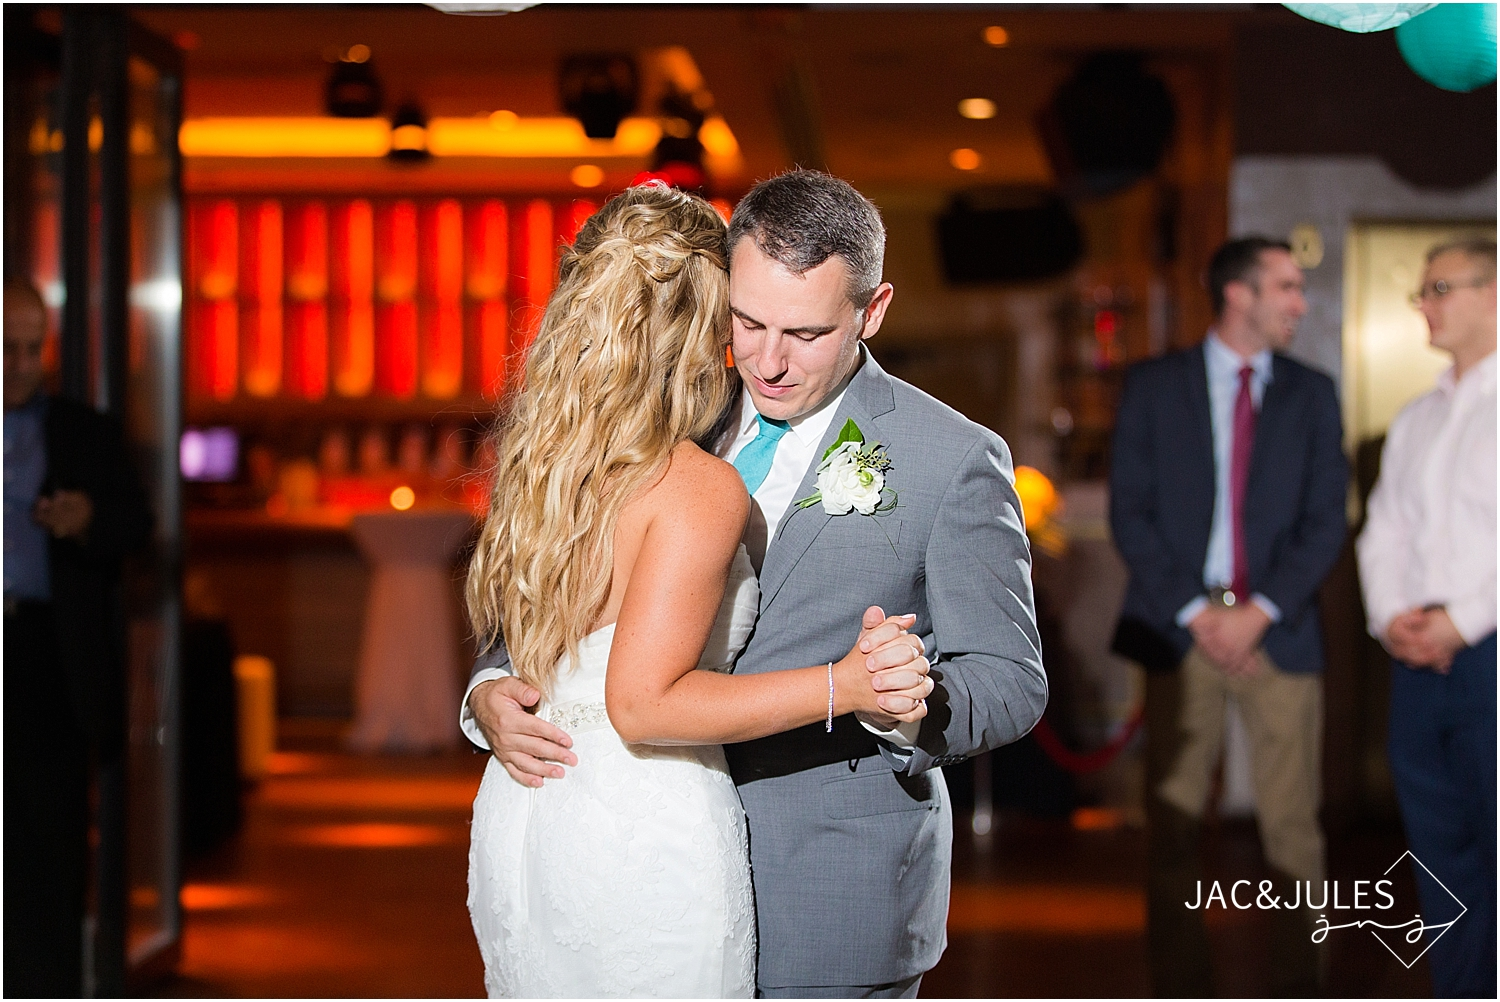 jacnjules photographs first dance at a wedding reception at Le Club Avenue in Long Branch, NJ